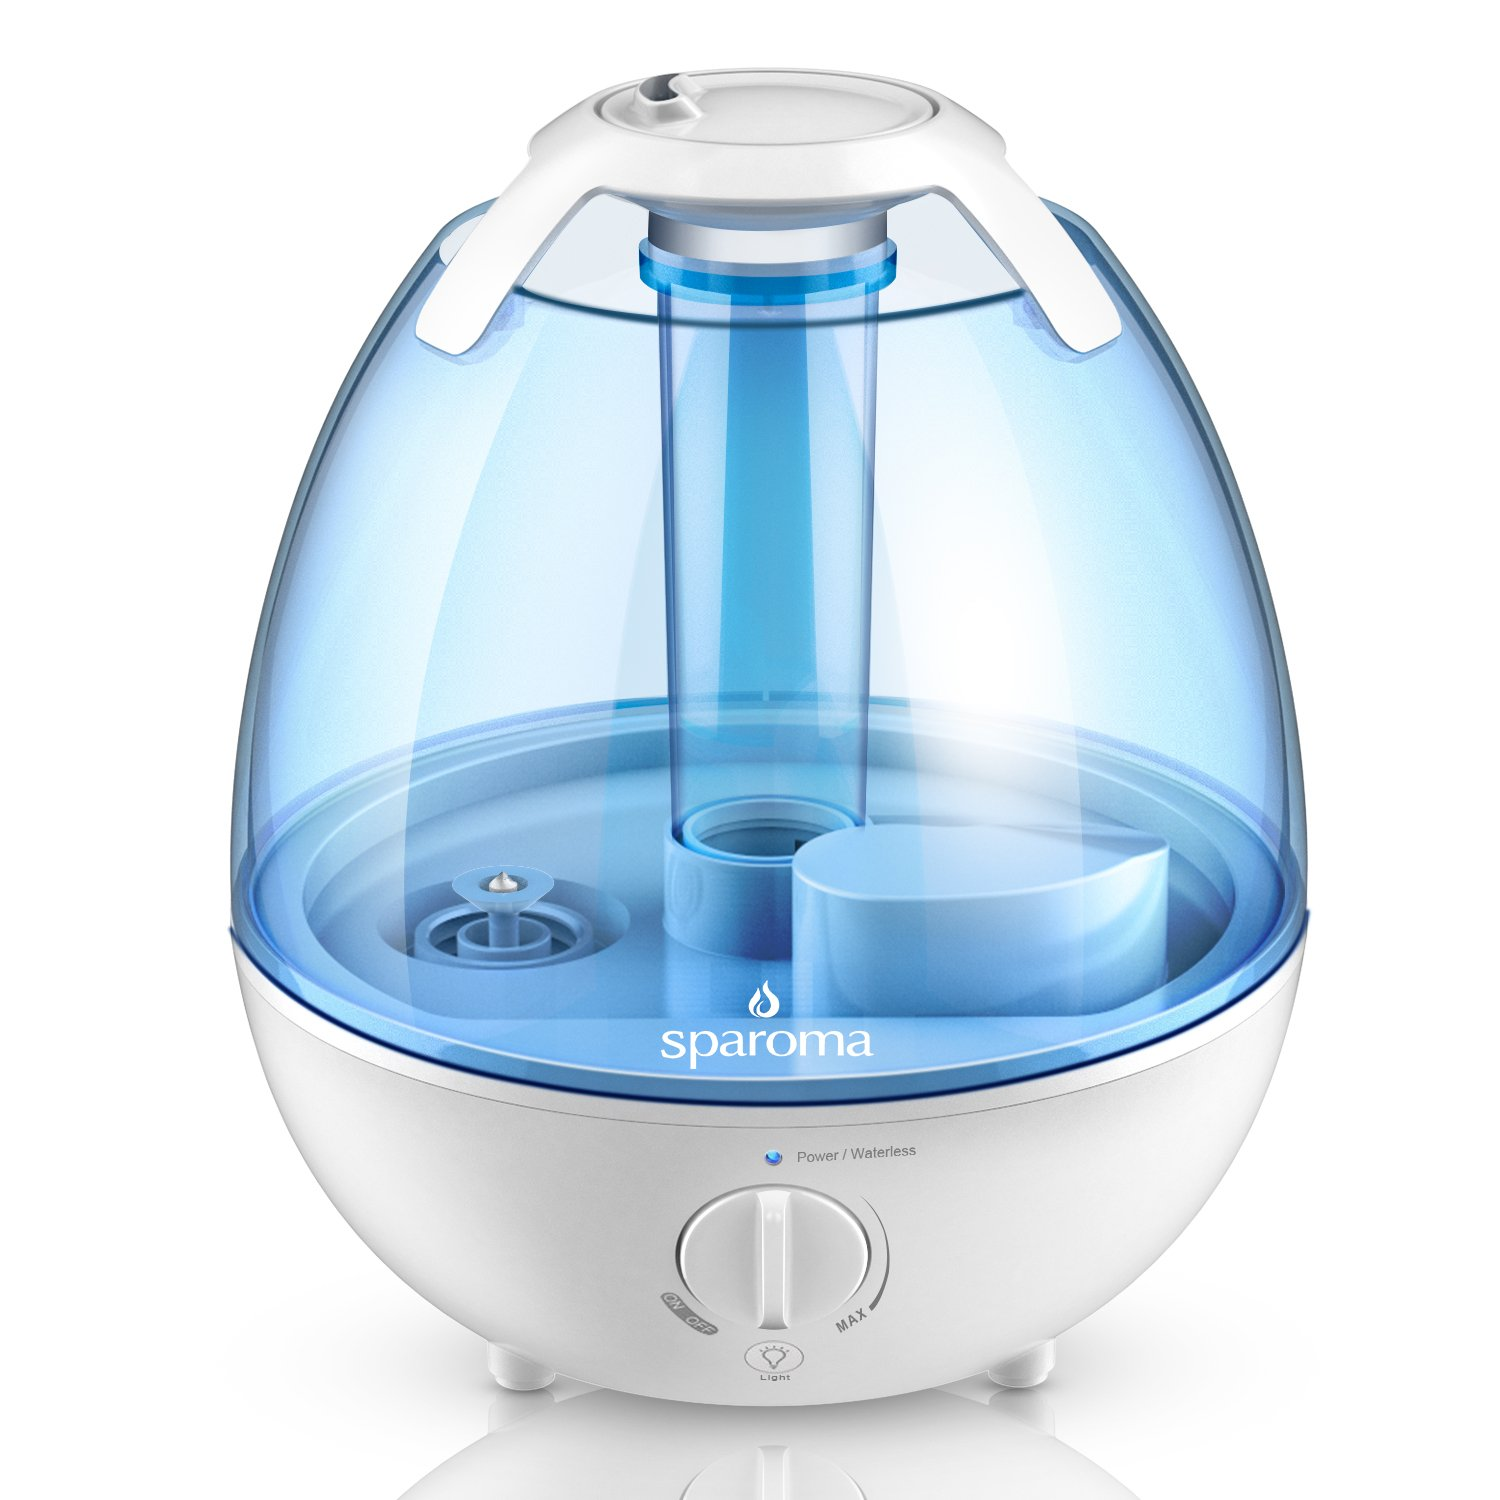 Cool Mist Humidifier   Ultrasonic Humidifiers Air Humidifiers For Bedroom, 1 Gallon Mist Humidifiers With Quiet High Mist Output, Multi Mist Levels, Various Night Lights, Etl Approved, Filter Free by Sparoma